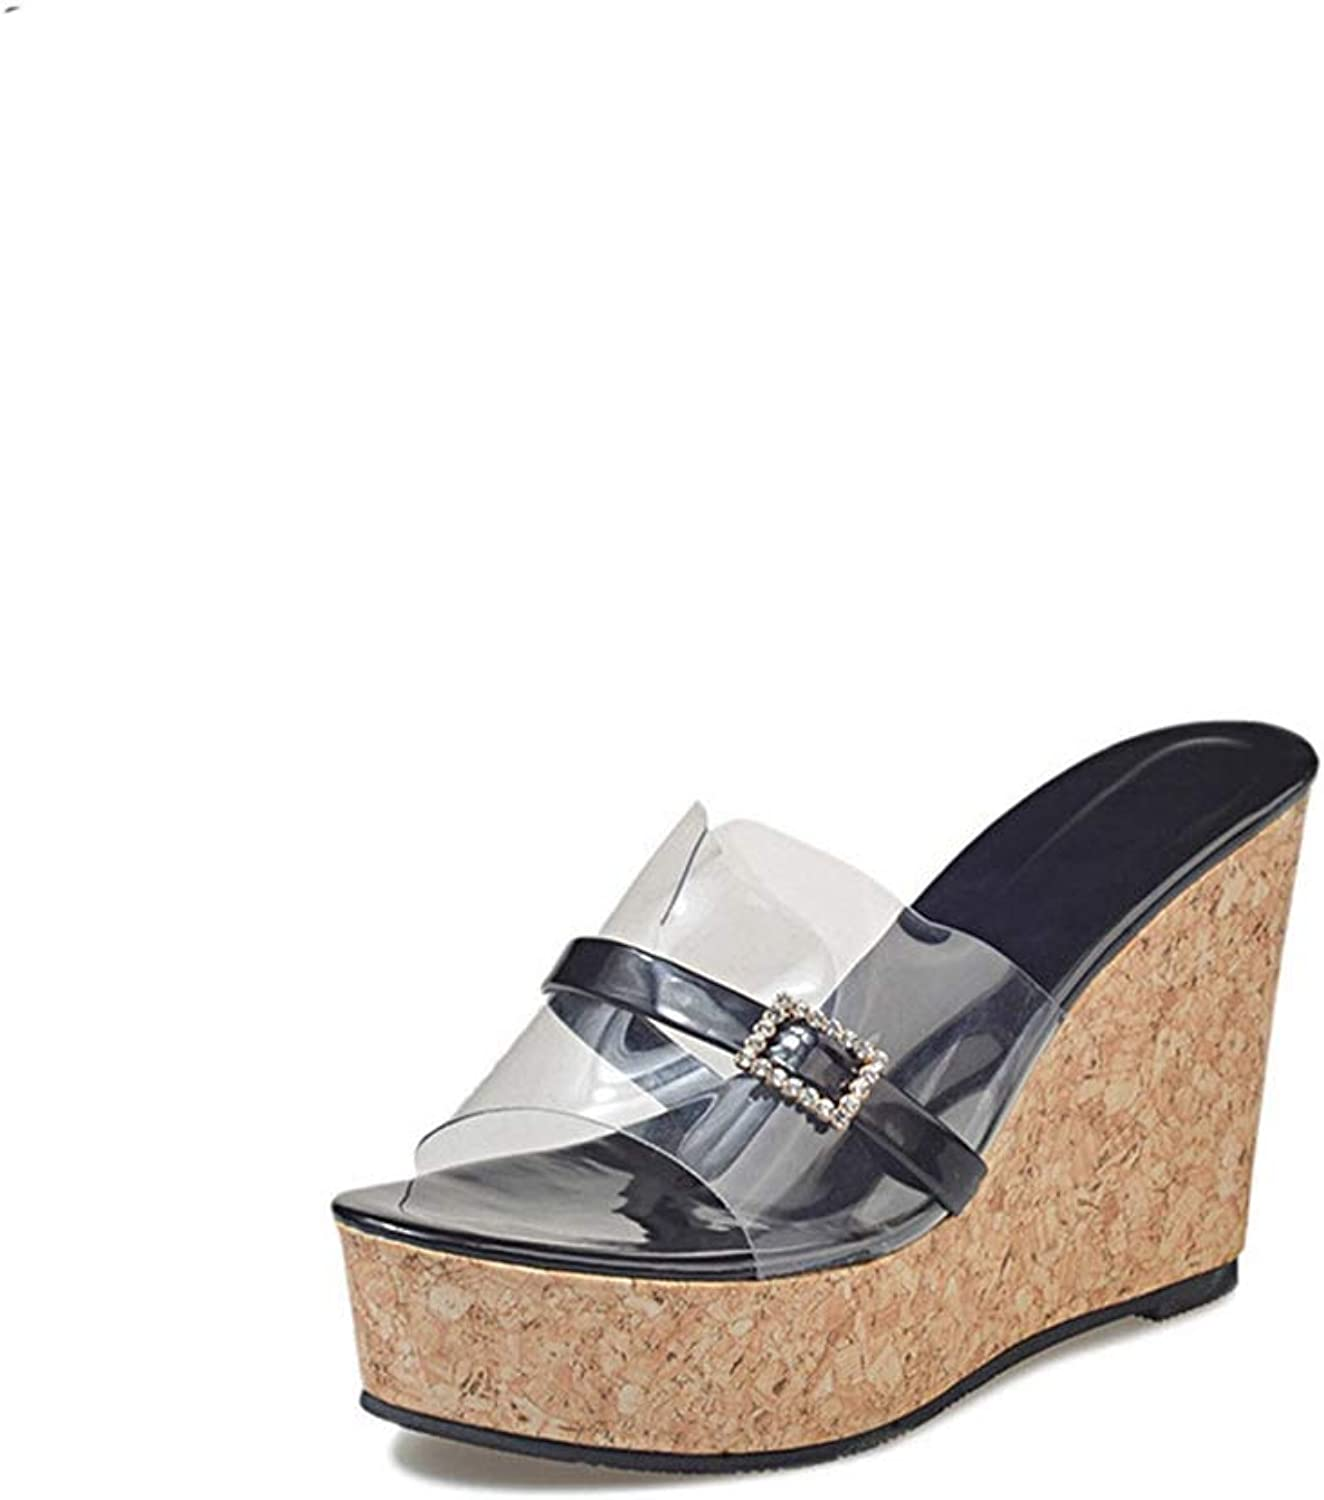 Zarbrina Womens Wedges Sandals Sexy Transparent Platform shoes Shining Rhinestone High Heels Comfort Non-Slip Sole Summer Beach Wears